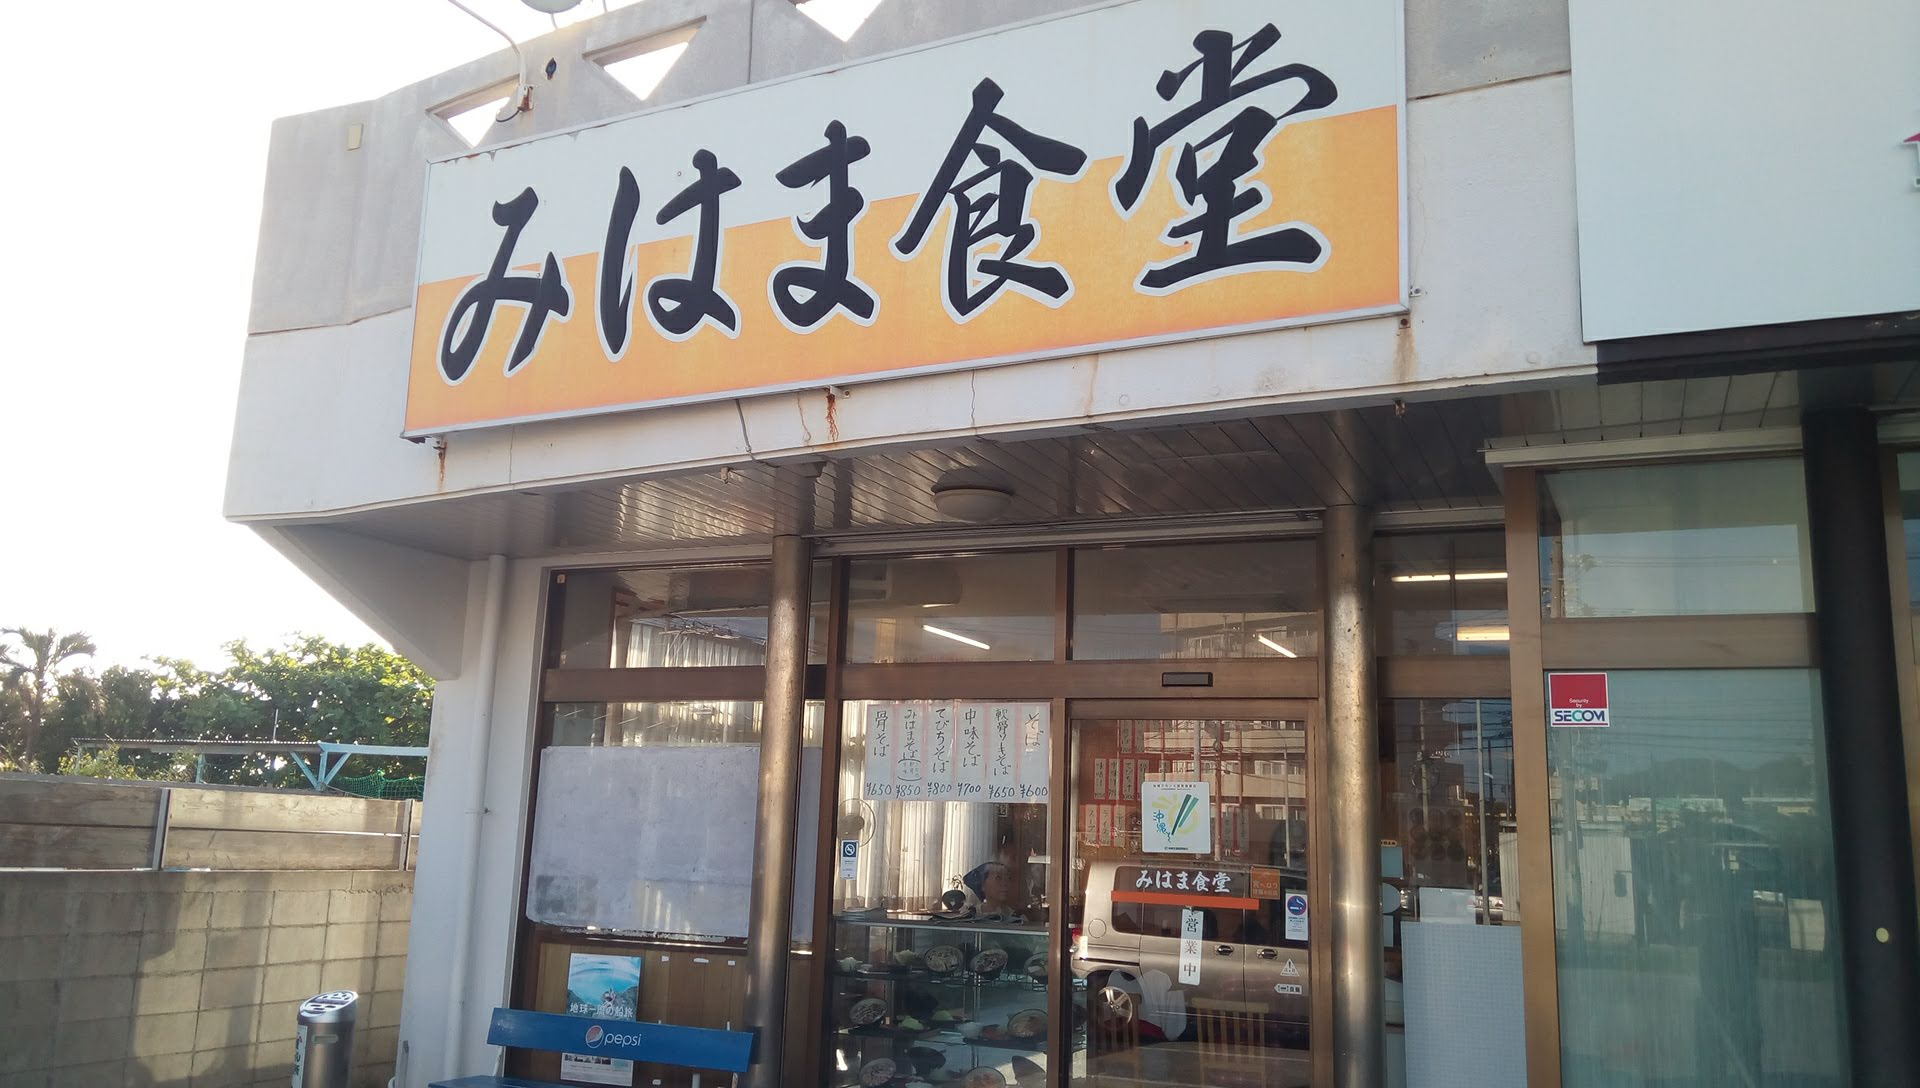 If you would like to eat delicious Okinawa cuisine at Mihama Chatan town, Mihama shokudou!